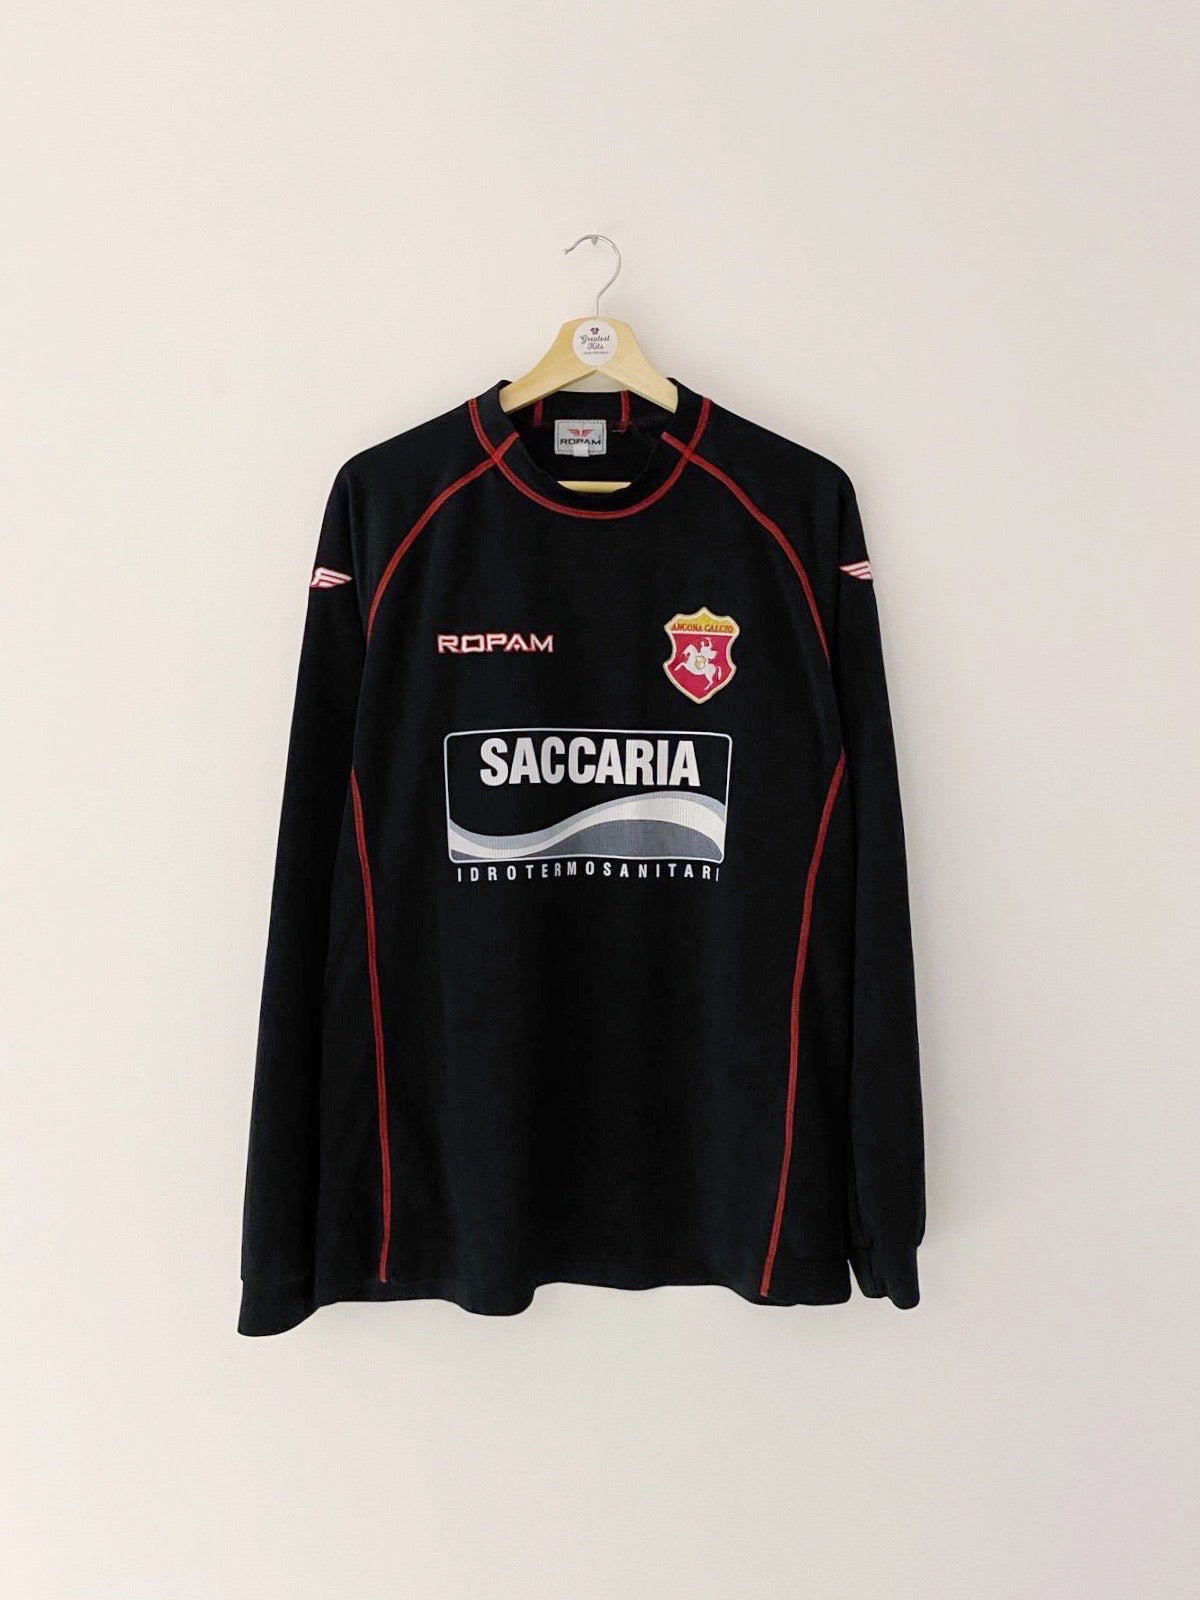 2001/02 Ancona *Player Issue* GK Shirt #12 (XL) 9/10